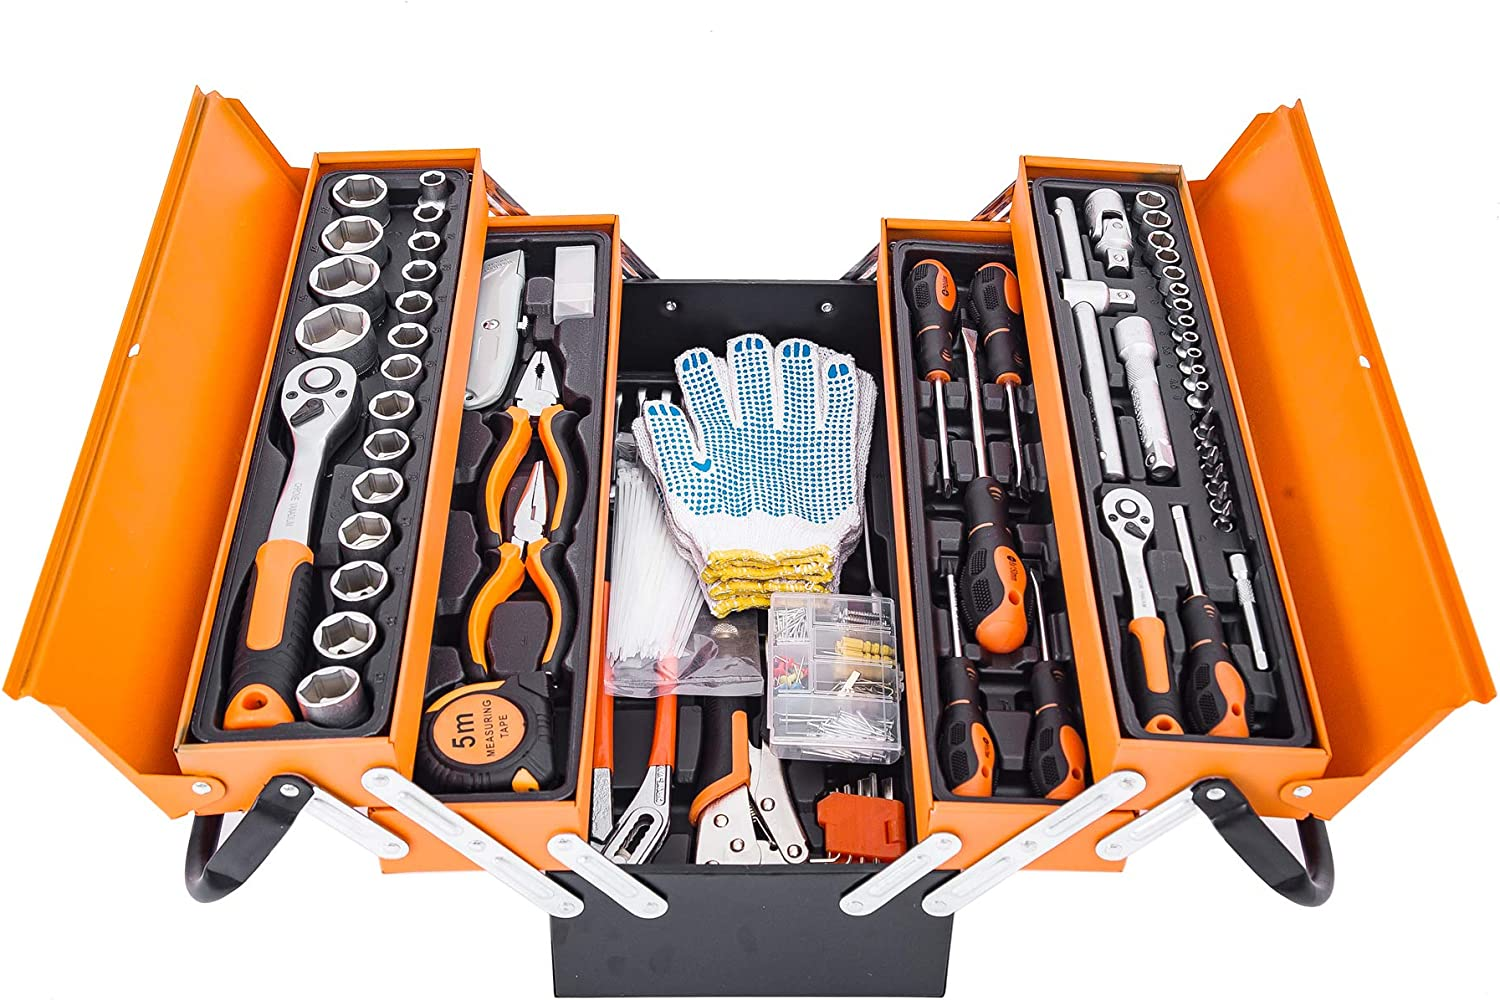 299-Piece Household Tool Kits with 3 Drawer Tool Box , Home/Auto Repair Tool Set with Hammer, Pliers, Screwdriver Set, Wrench Socket Kit and Toolbox Storage Case - Perfect for Homeowner, Diyer, Handyman